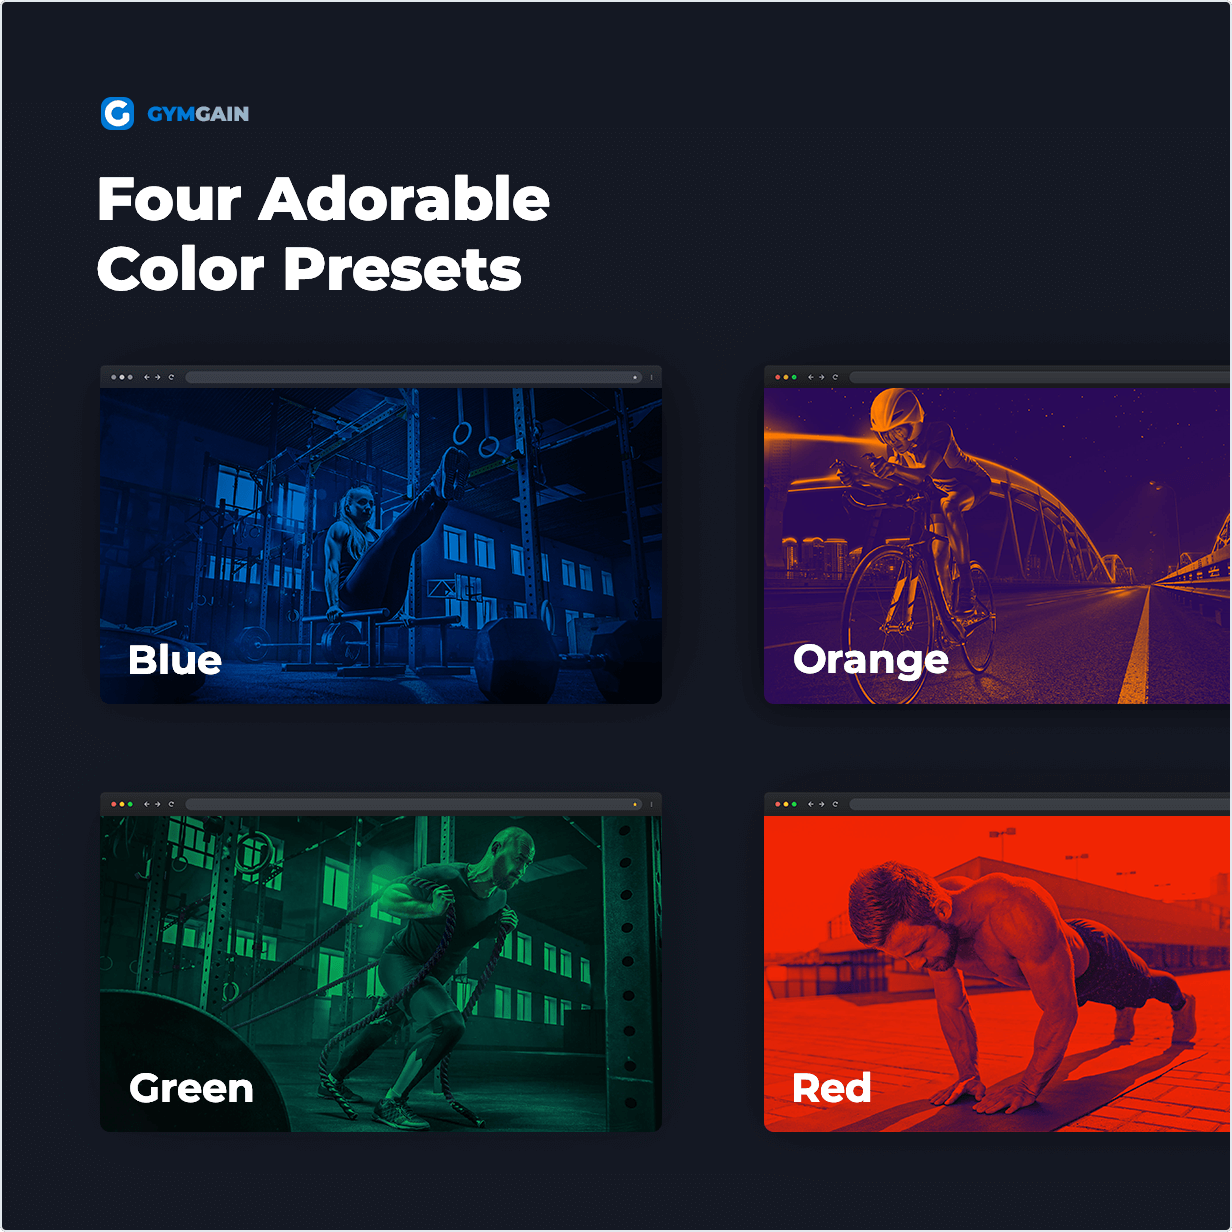 Four Adorable Color Presets